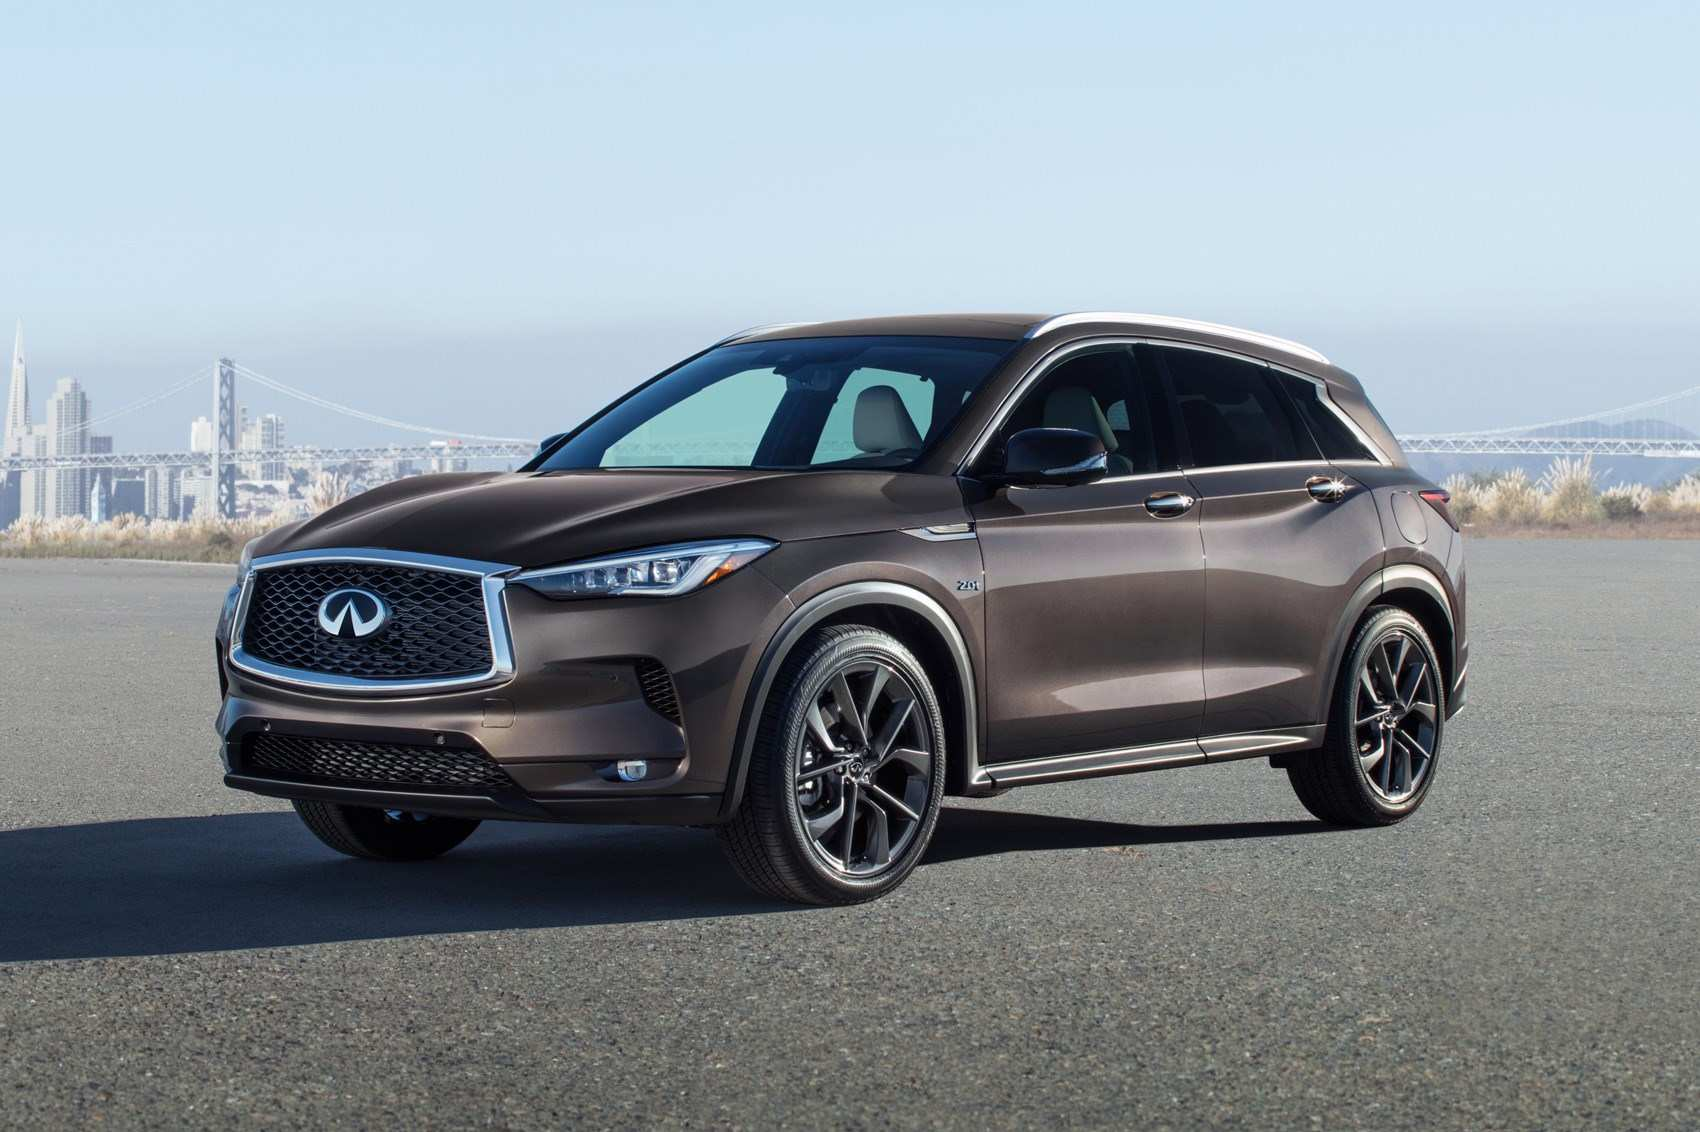 93 Best Review Infiniti Europe 2020 Redesign with Infiniti Europe 2020